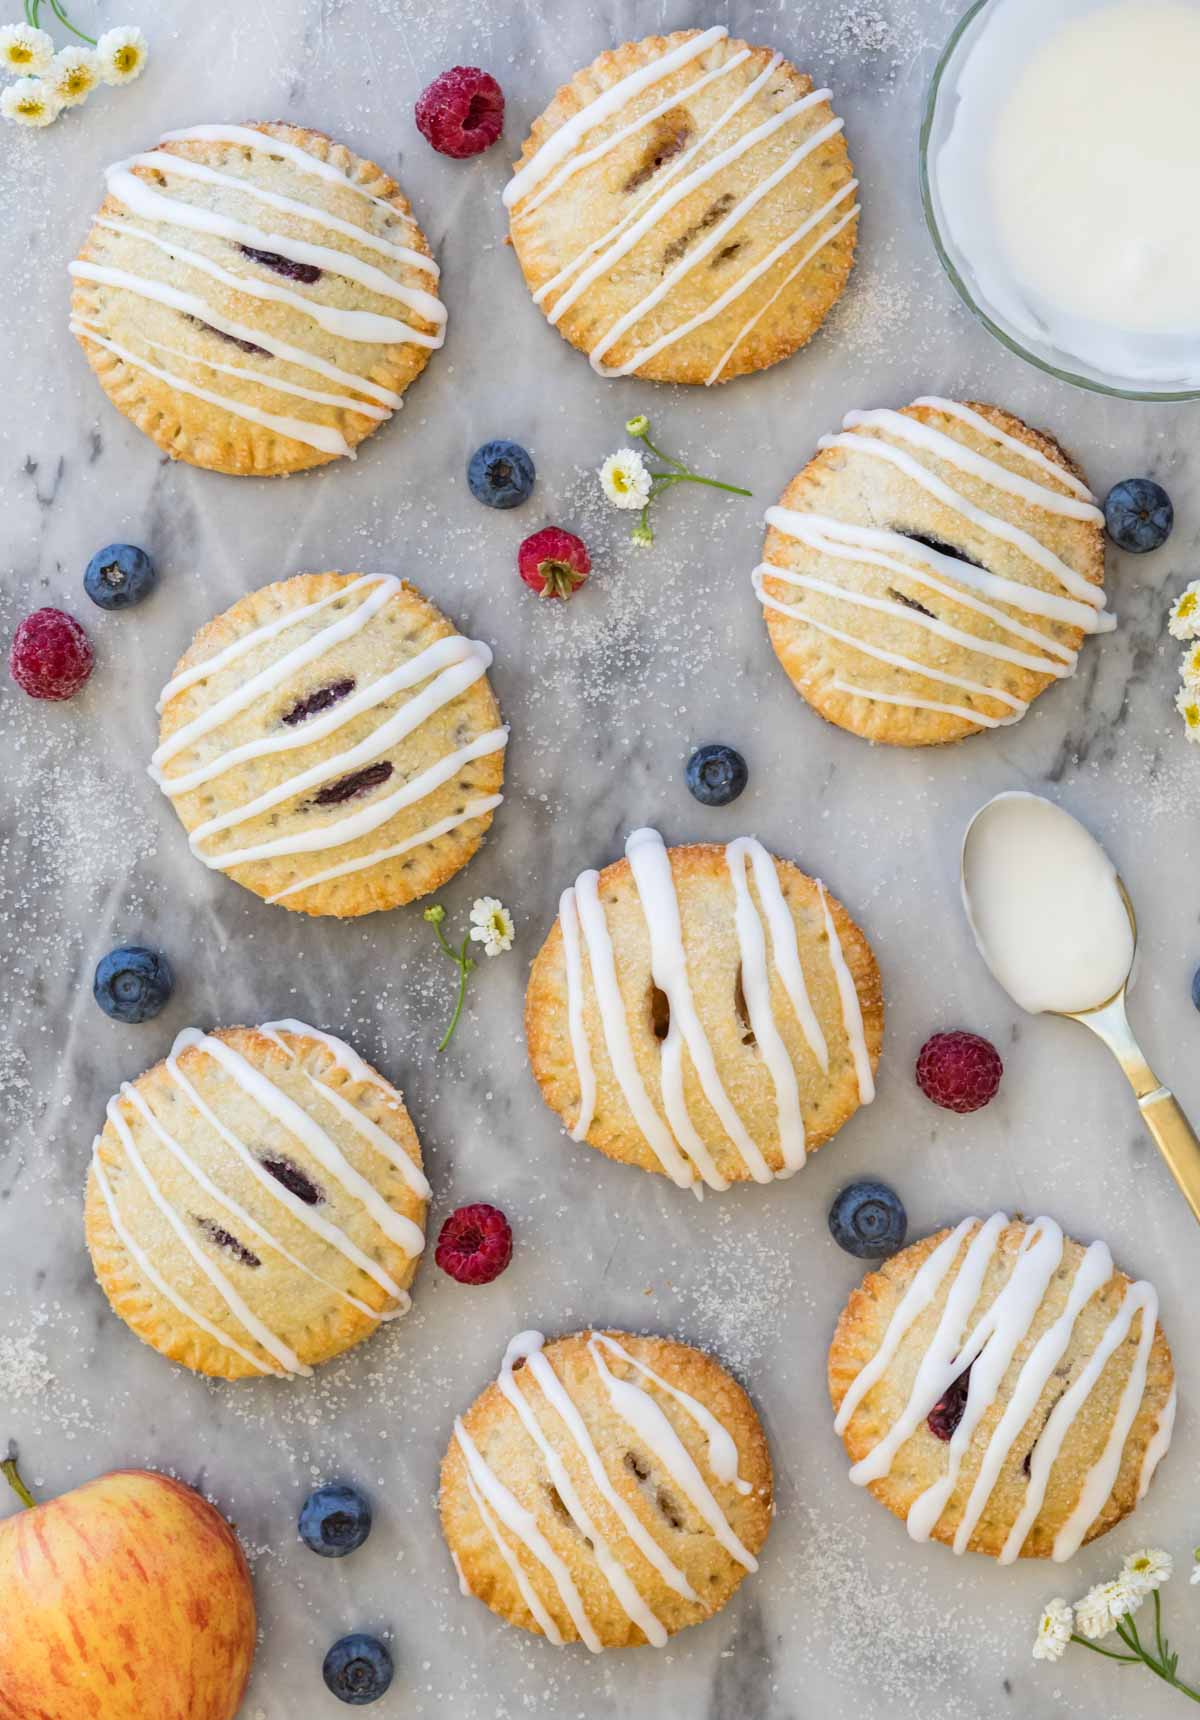 Overhead photograph of fruit-filled hand pies drizzled with vanilla glaze